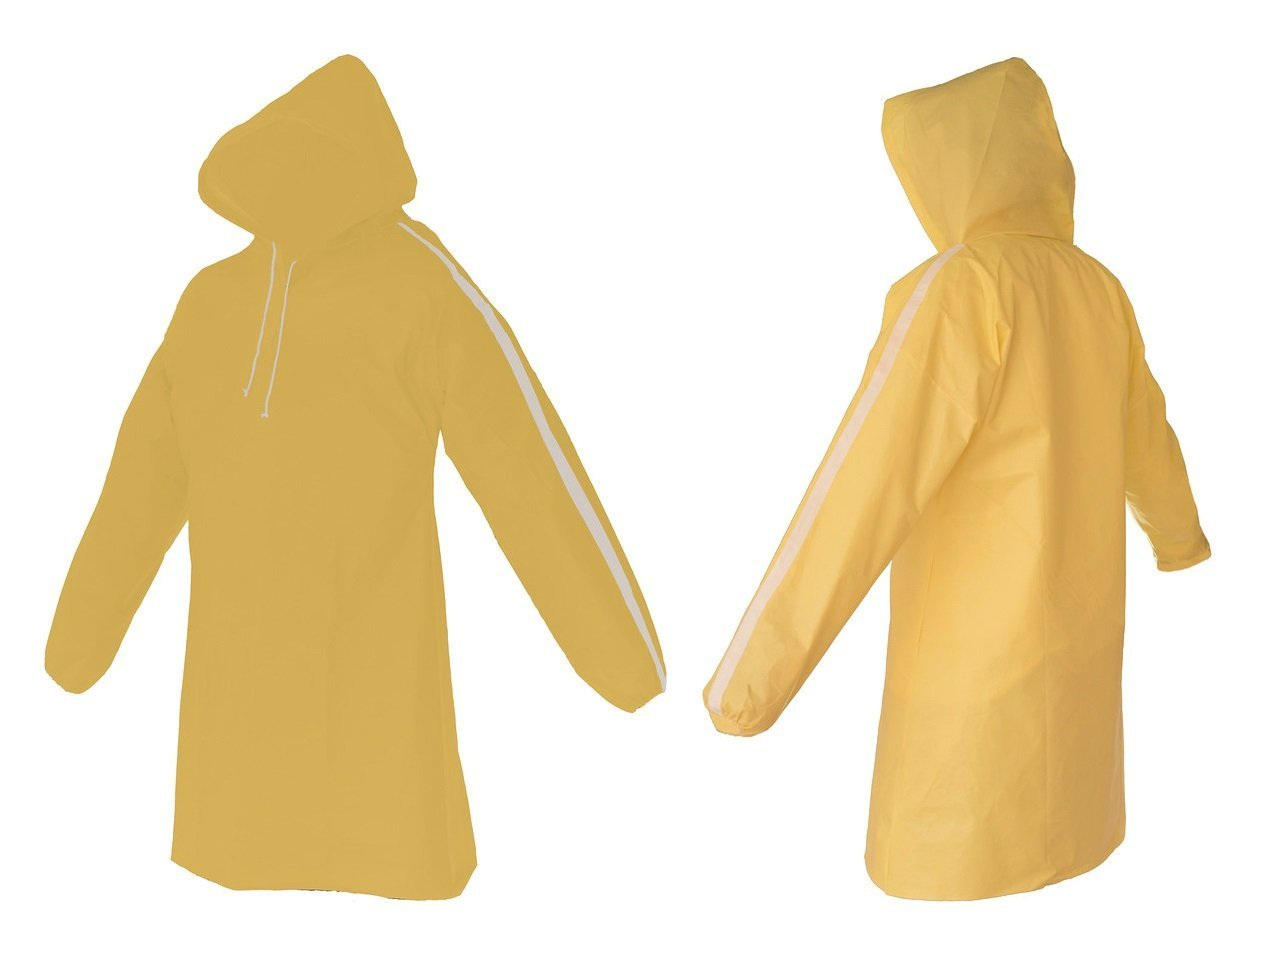 Waterproof Rain Poncho for Men & Women by AllWeatherWare – Lightweight, Breathable Rain Gear Pullover – Reusable & Foldable Adults Coat - Ideal For Outdoors & Sports Events | Various Colors & Sizes